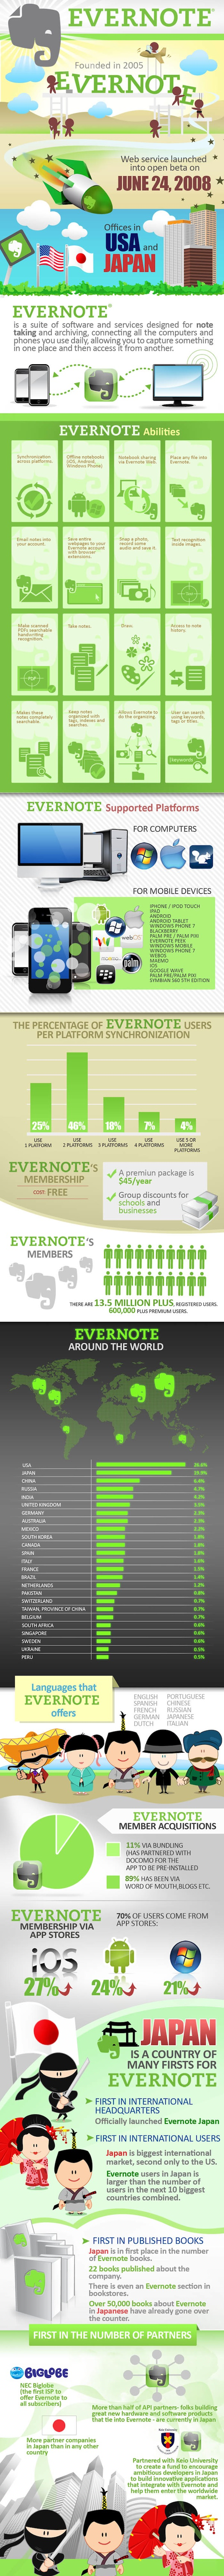 Evernote infographic